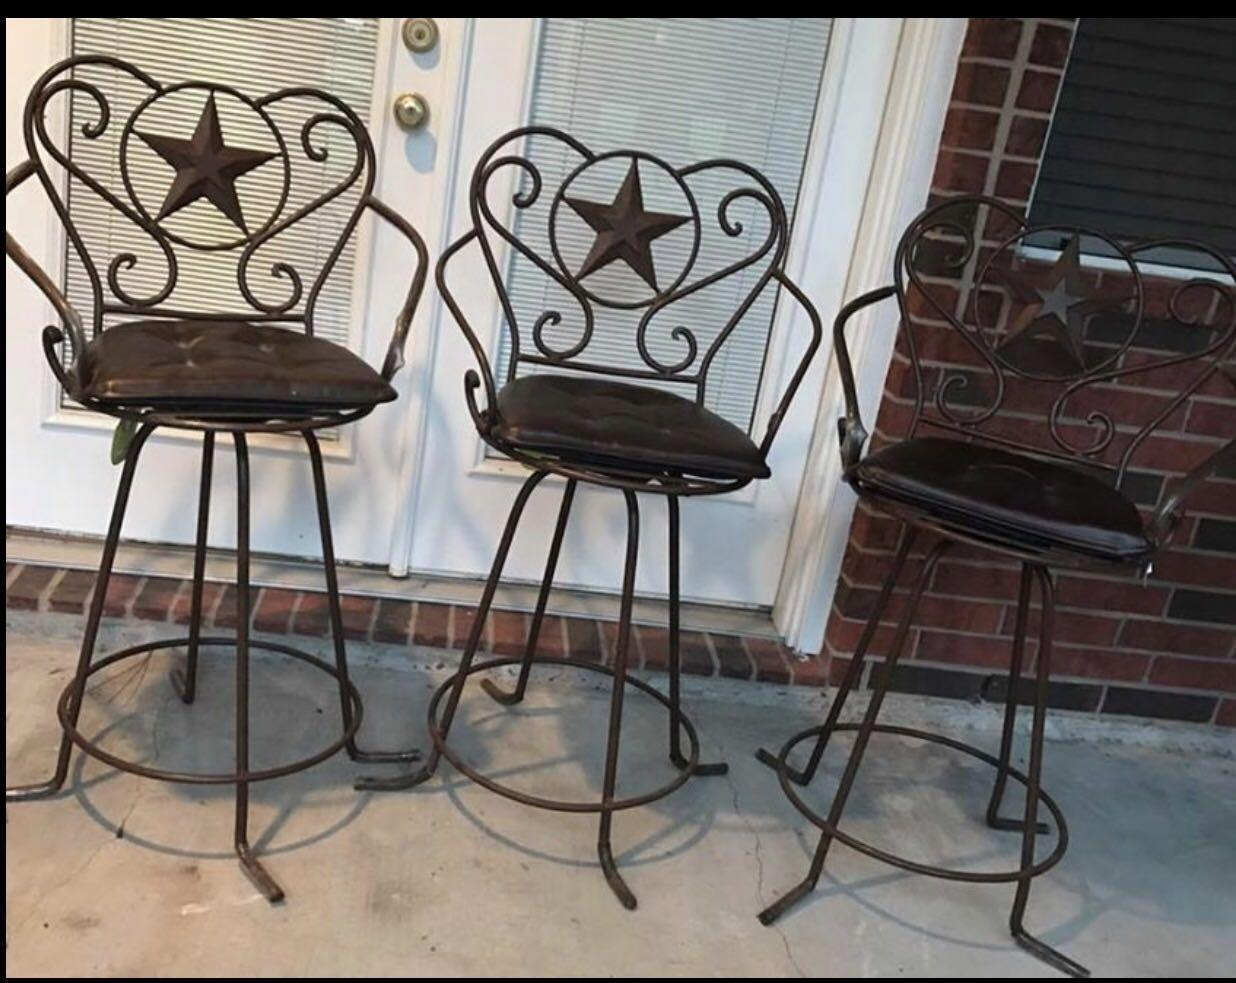 Find more 3 gorgeous heavy rod iron texas western rustic bar stools must sell today for sale at - Rustic bar stools cheap ...